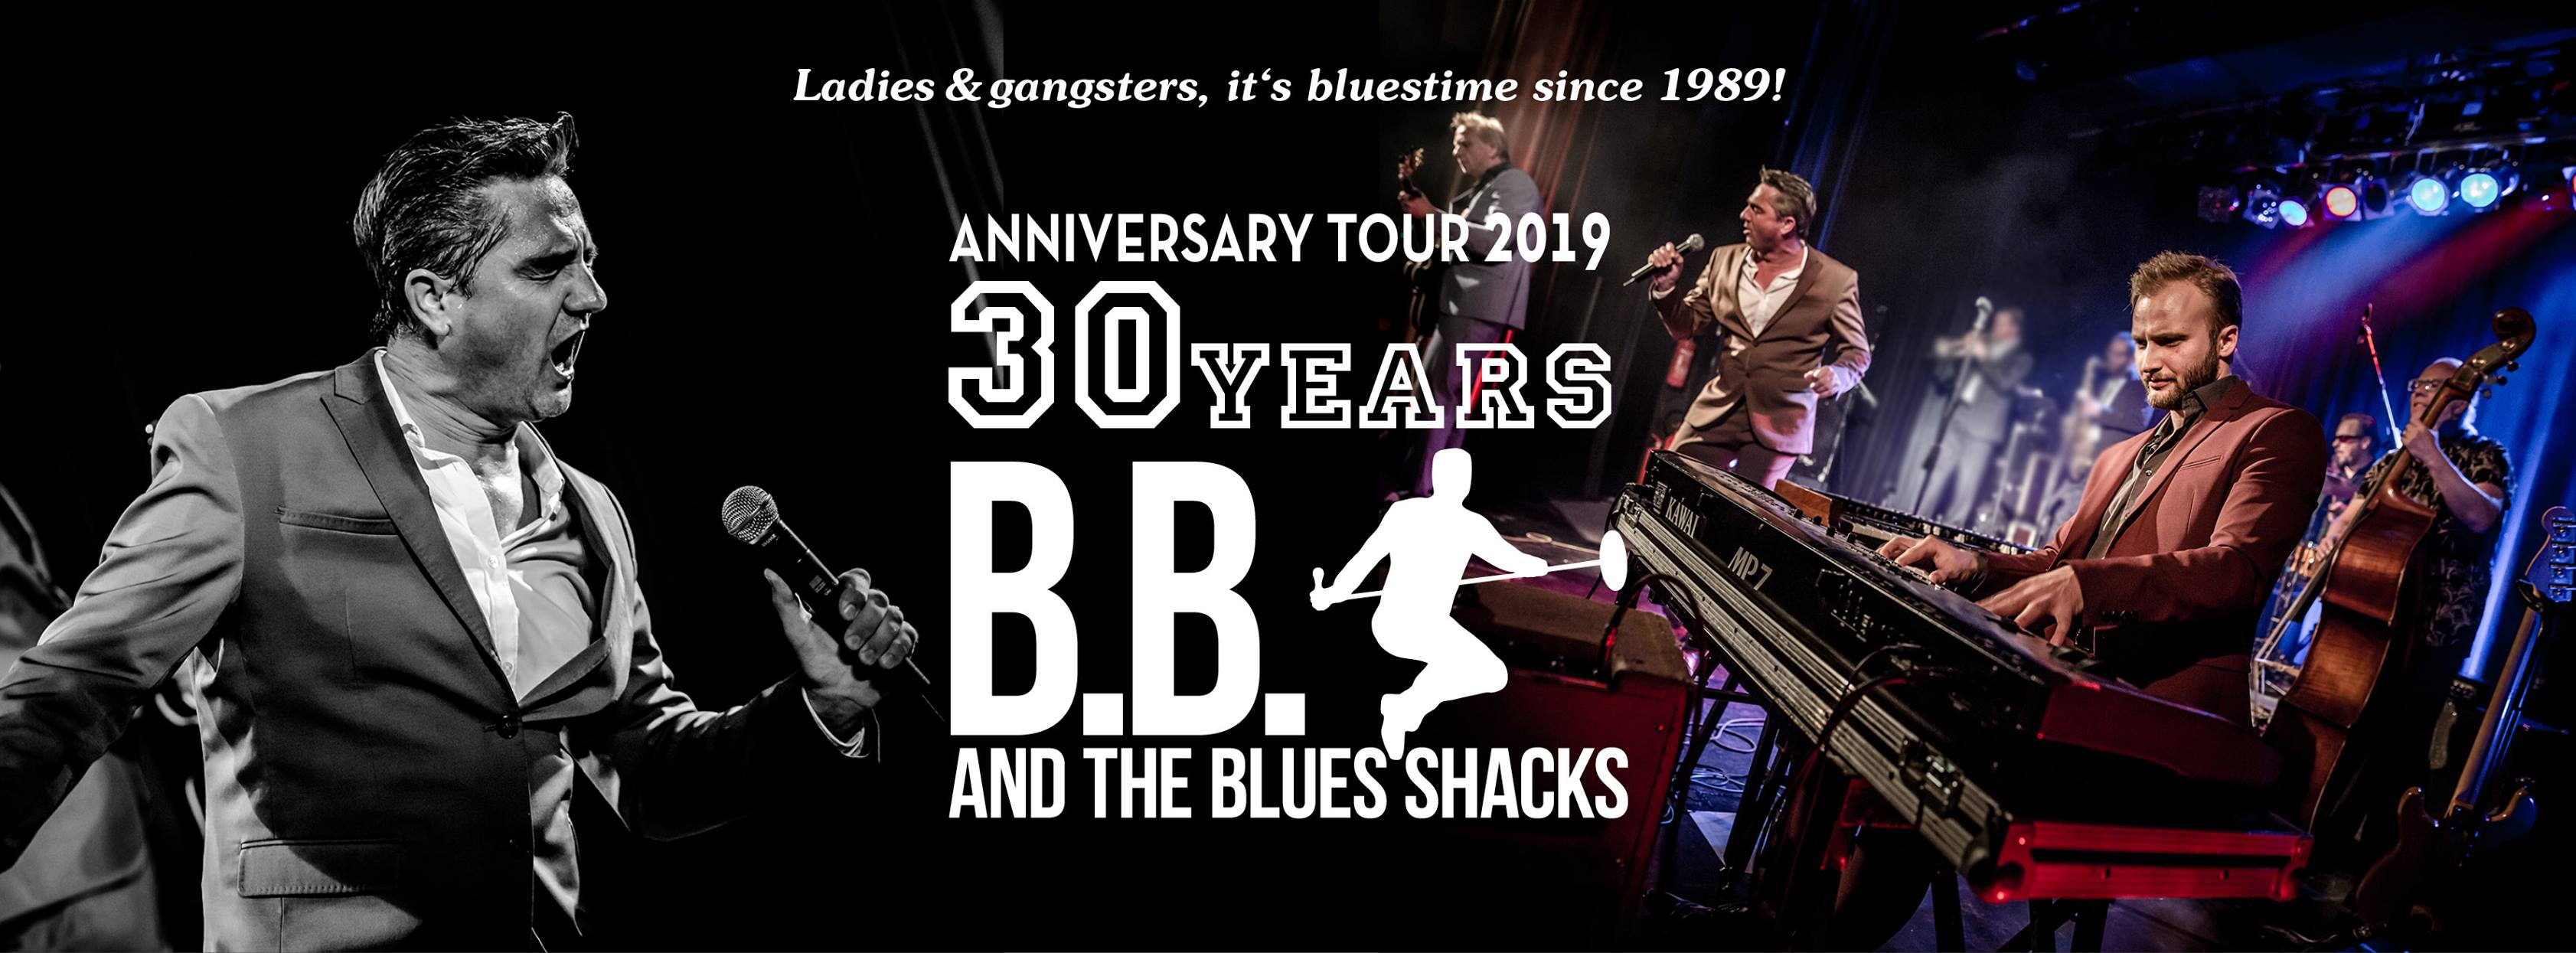 BB & THE BLUES SCHAKS